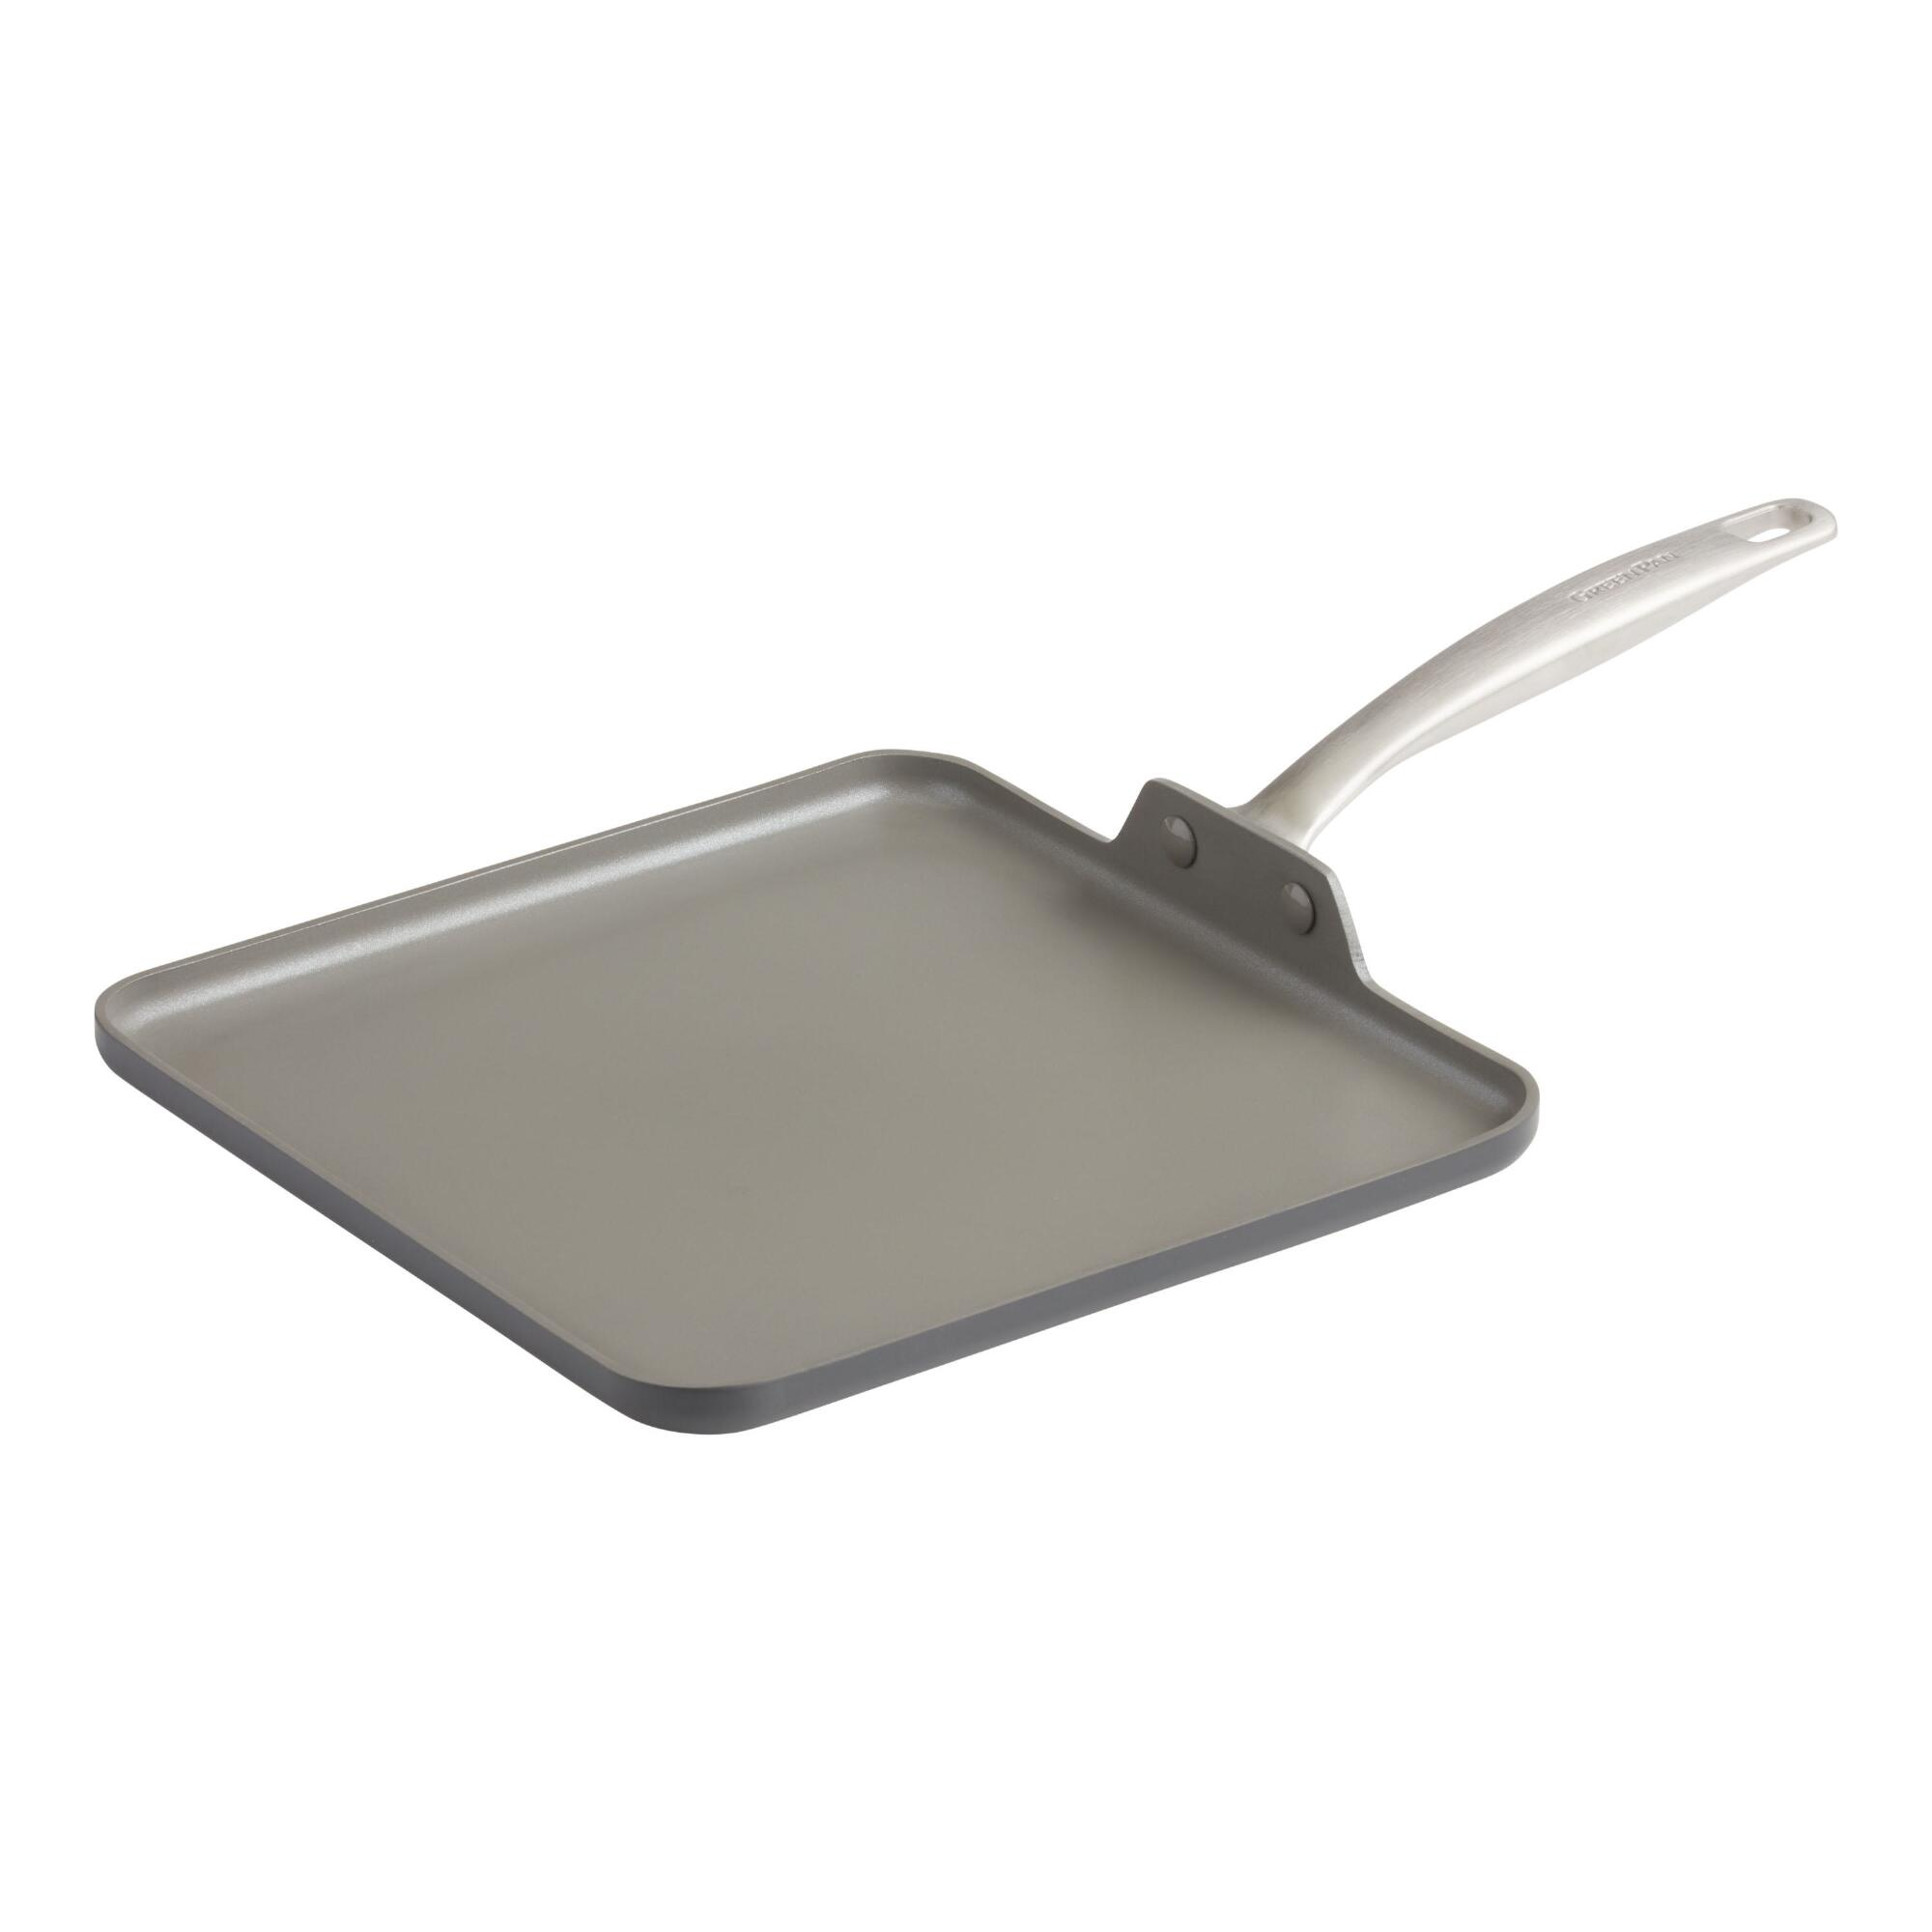 GreenPan Chatham Square Nonstick Ceramic Griddle Pan by World Market